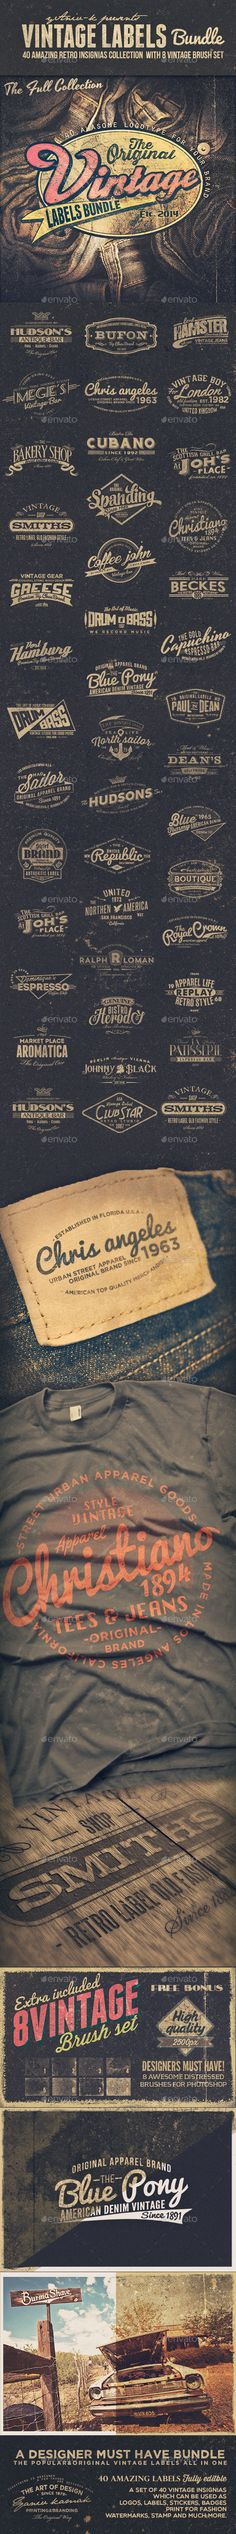 40 Vintage Labels Insignias Logos Bundle | Buy and Download: http://graphicriver.net/item/40-vintage-labels-insignias-logos-bundle/8908595?WT.ac=category_thumb&WT.z_author=yaniv-k&ref=ksioks